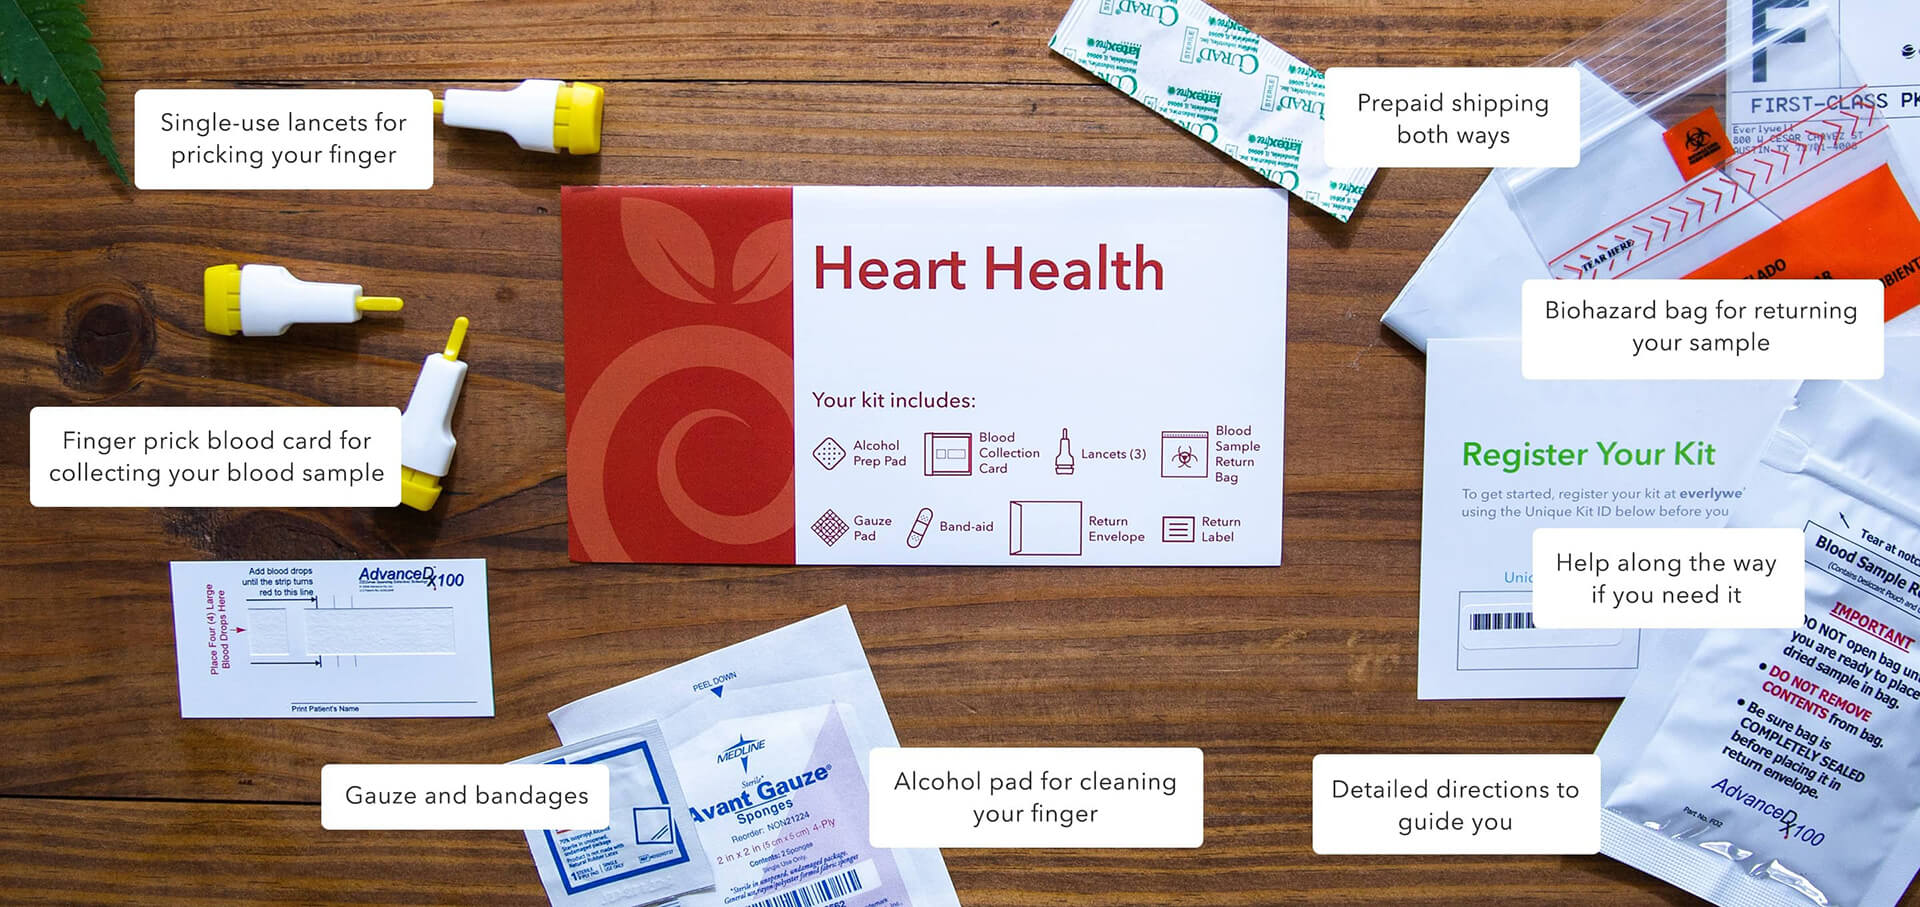 People Are Using These At-Home Kits to Test For Health Risks, But How Do They Work?